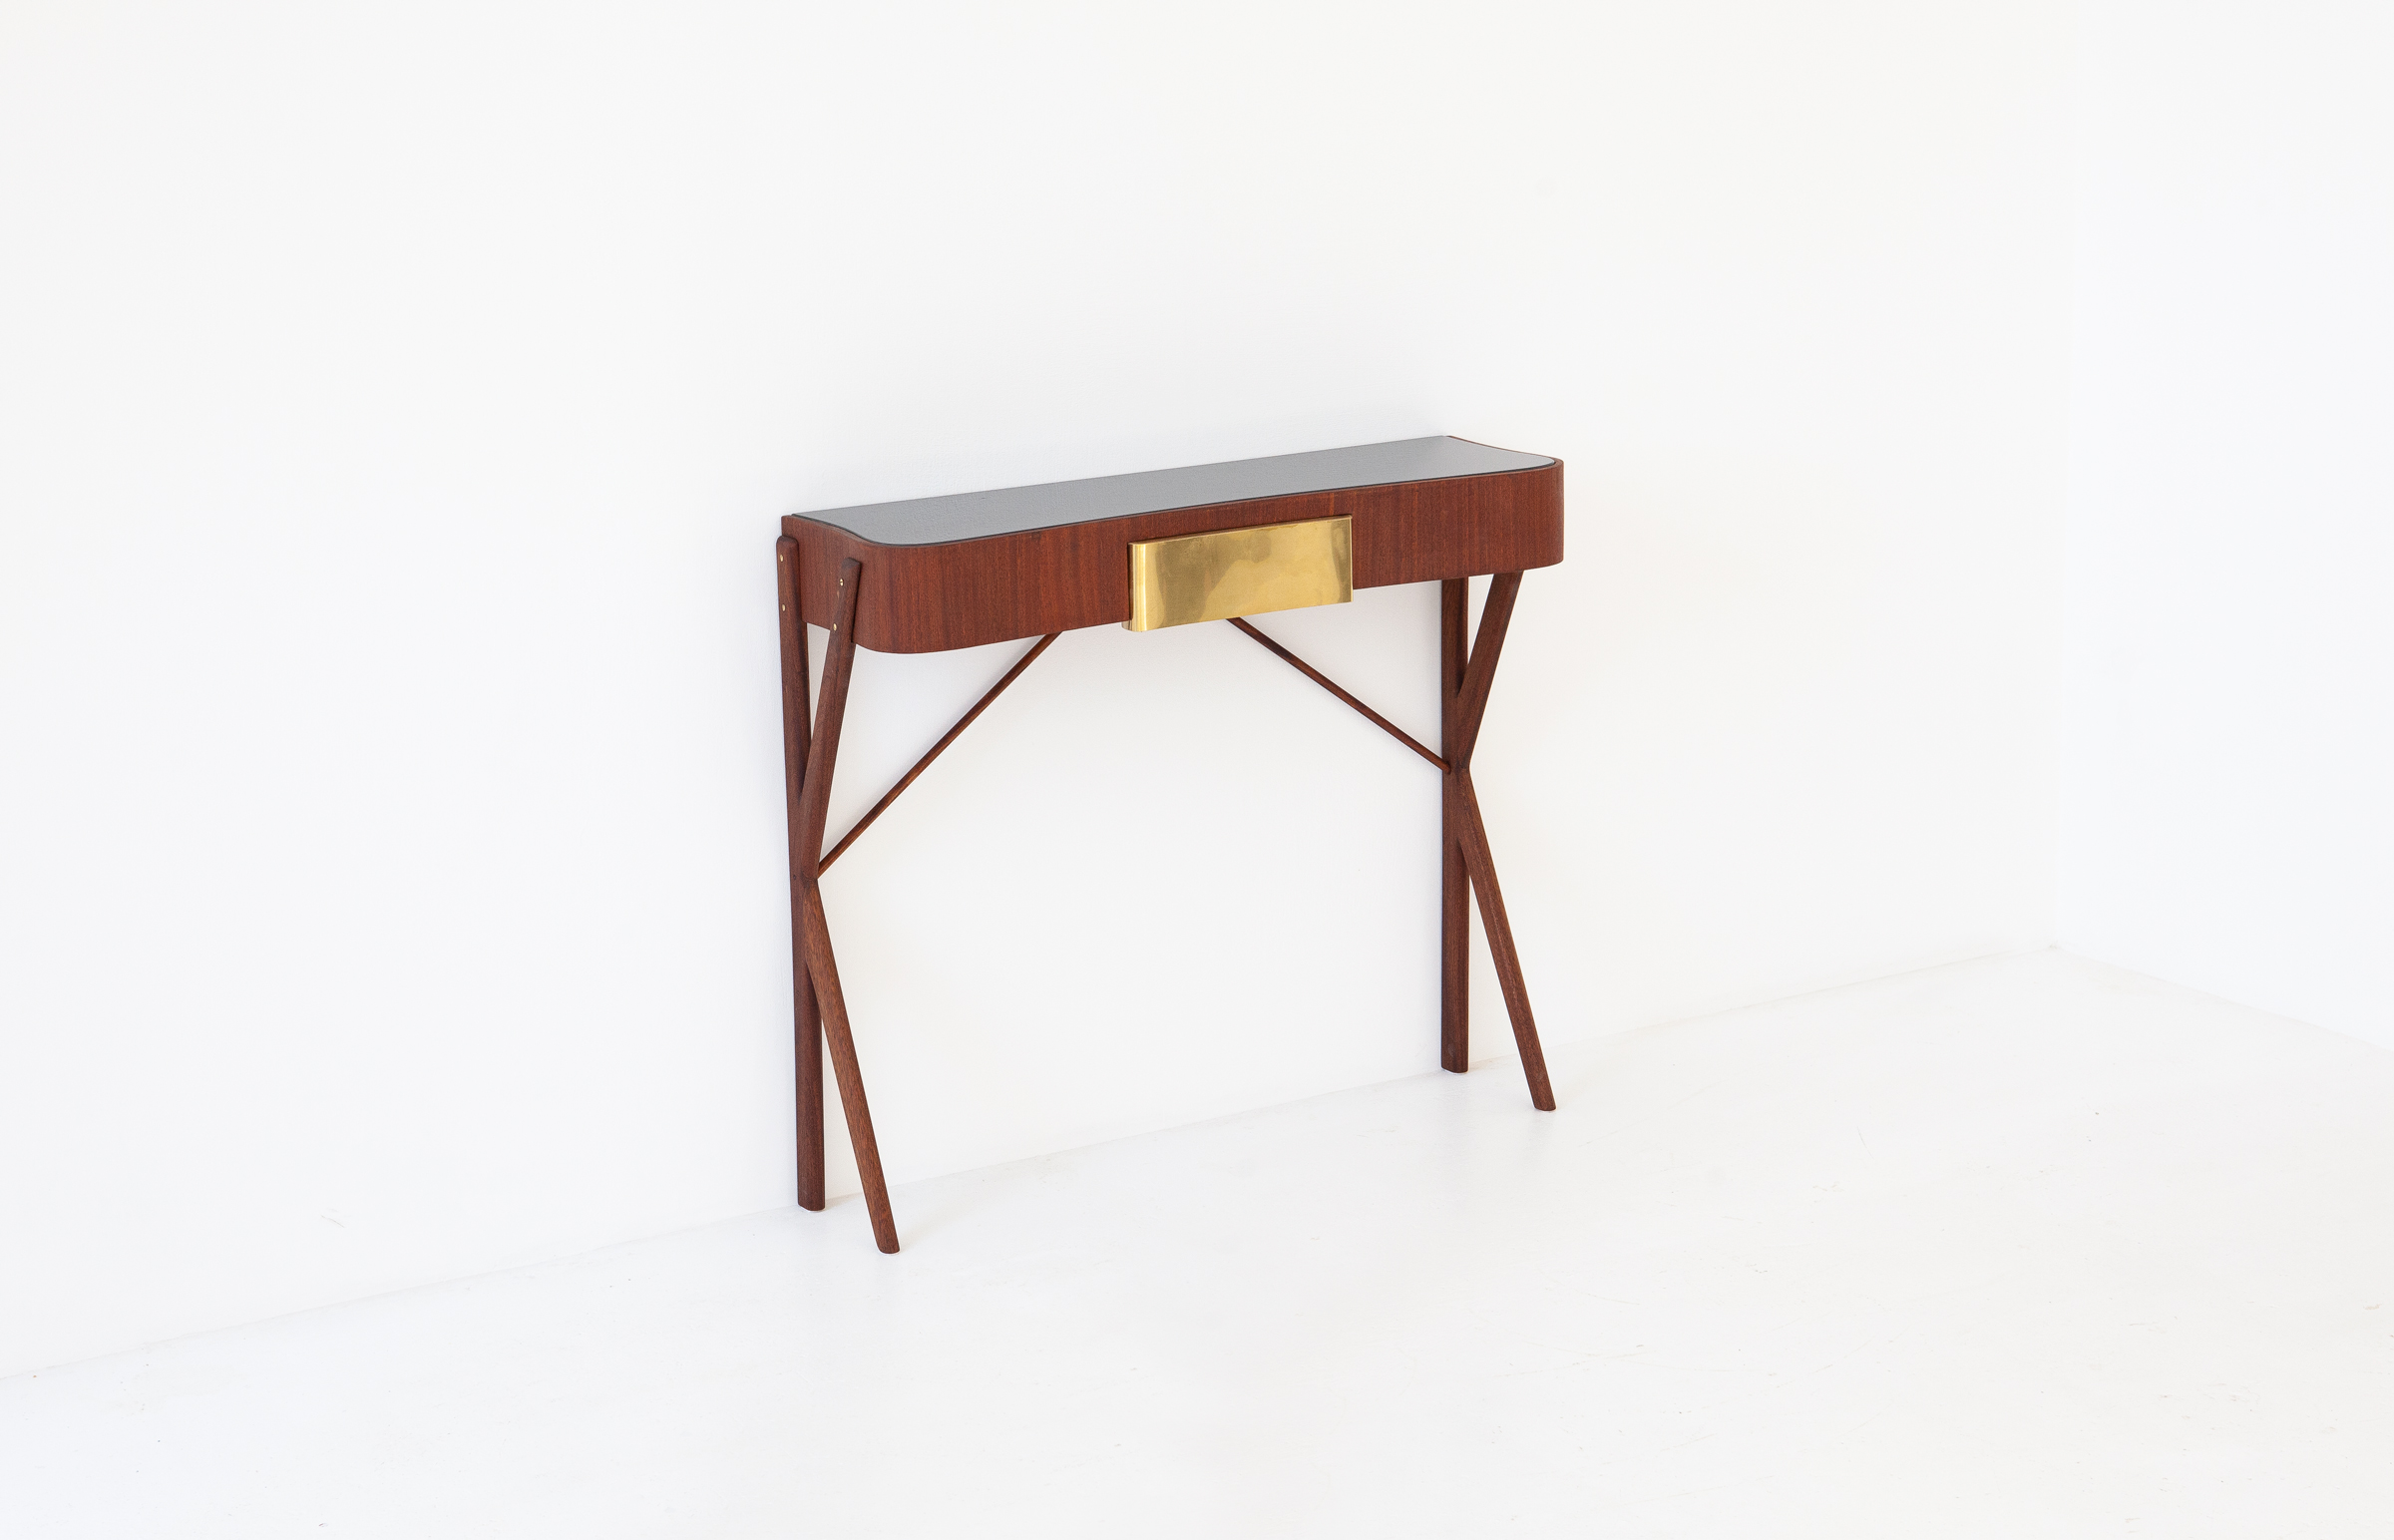 italian-mahogany-wood-brass-glass-console-table-1-10